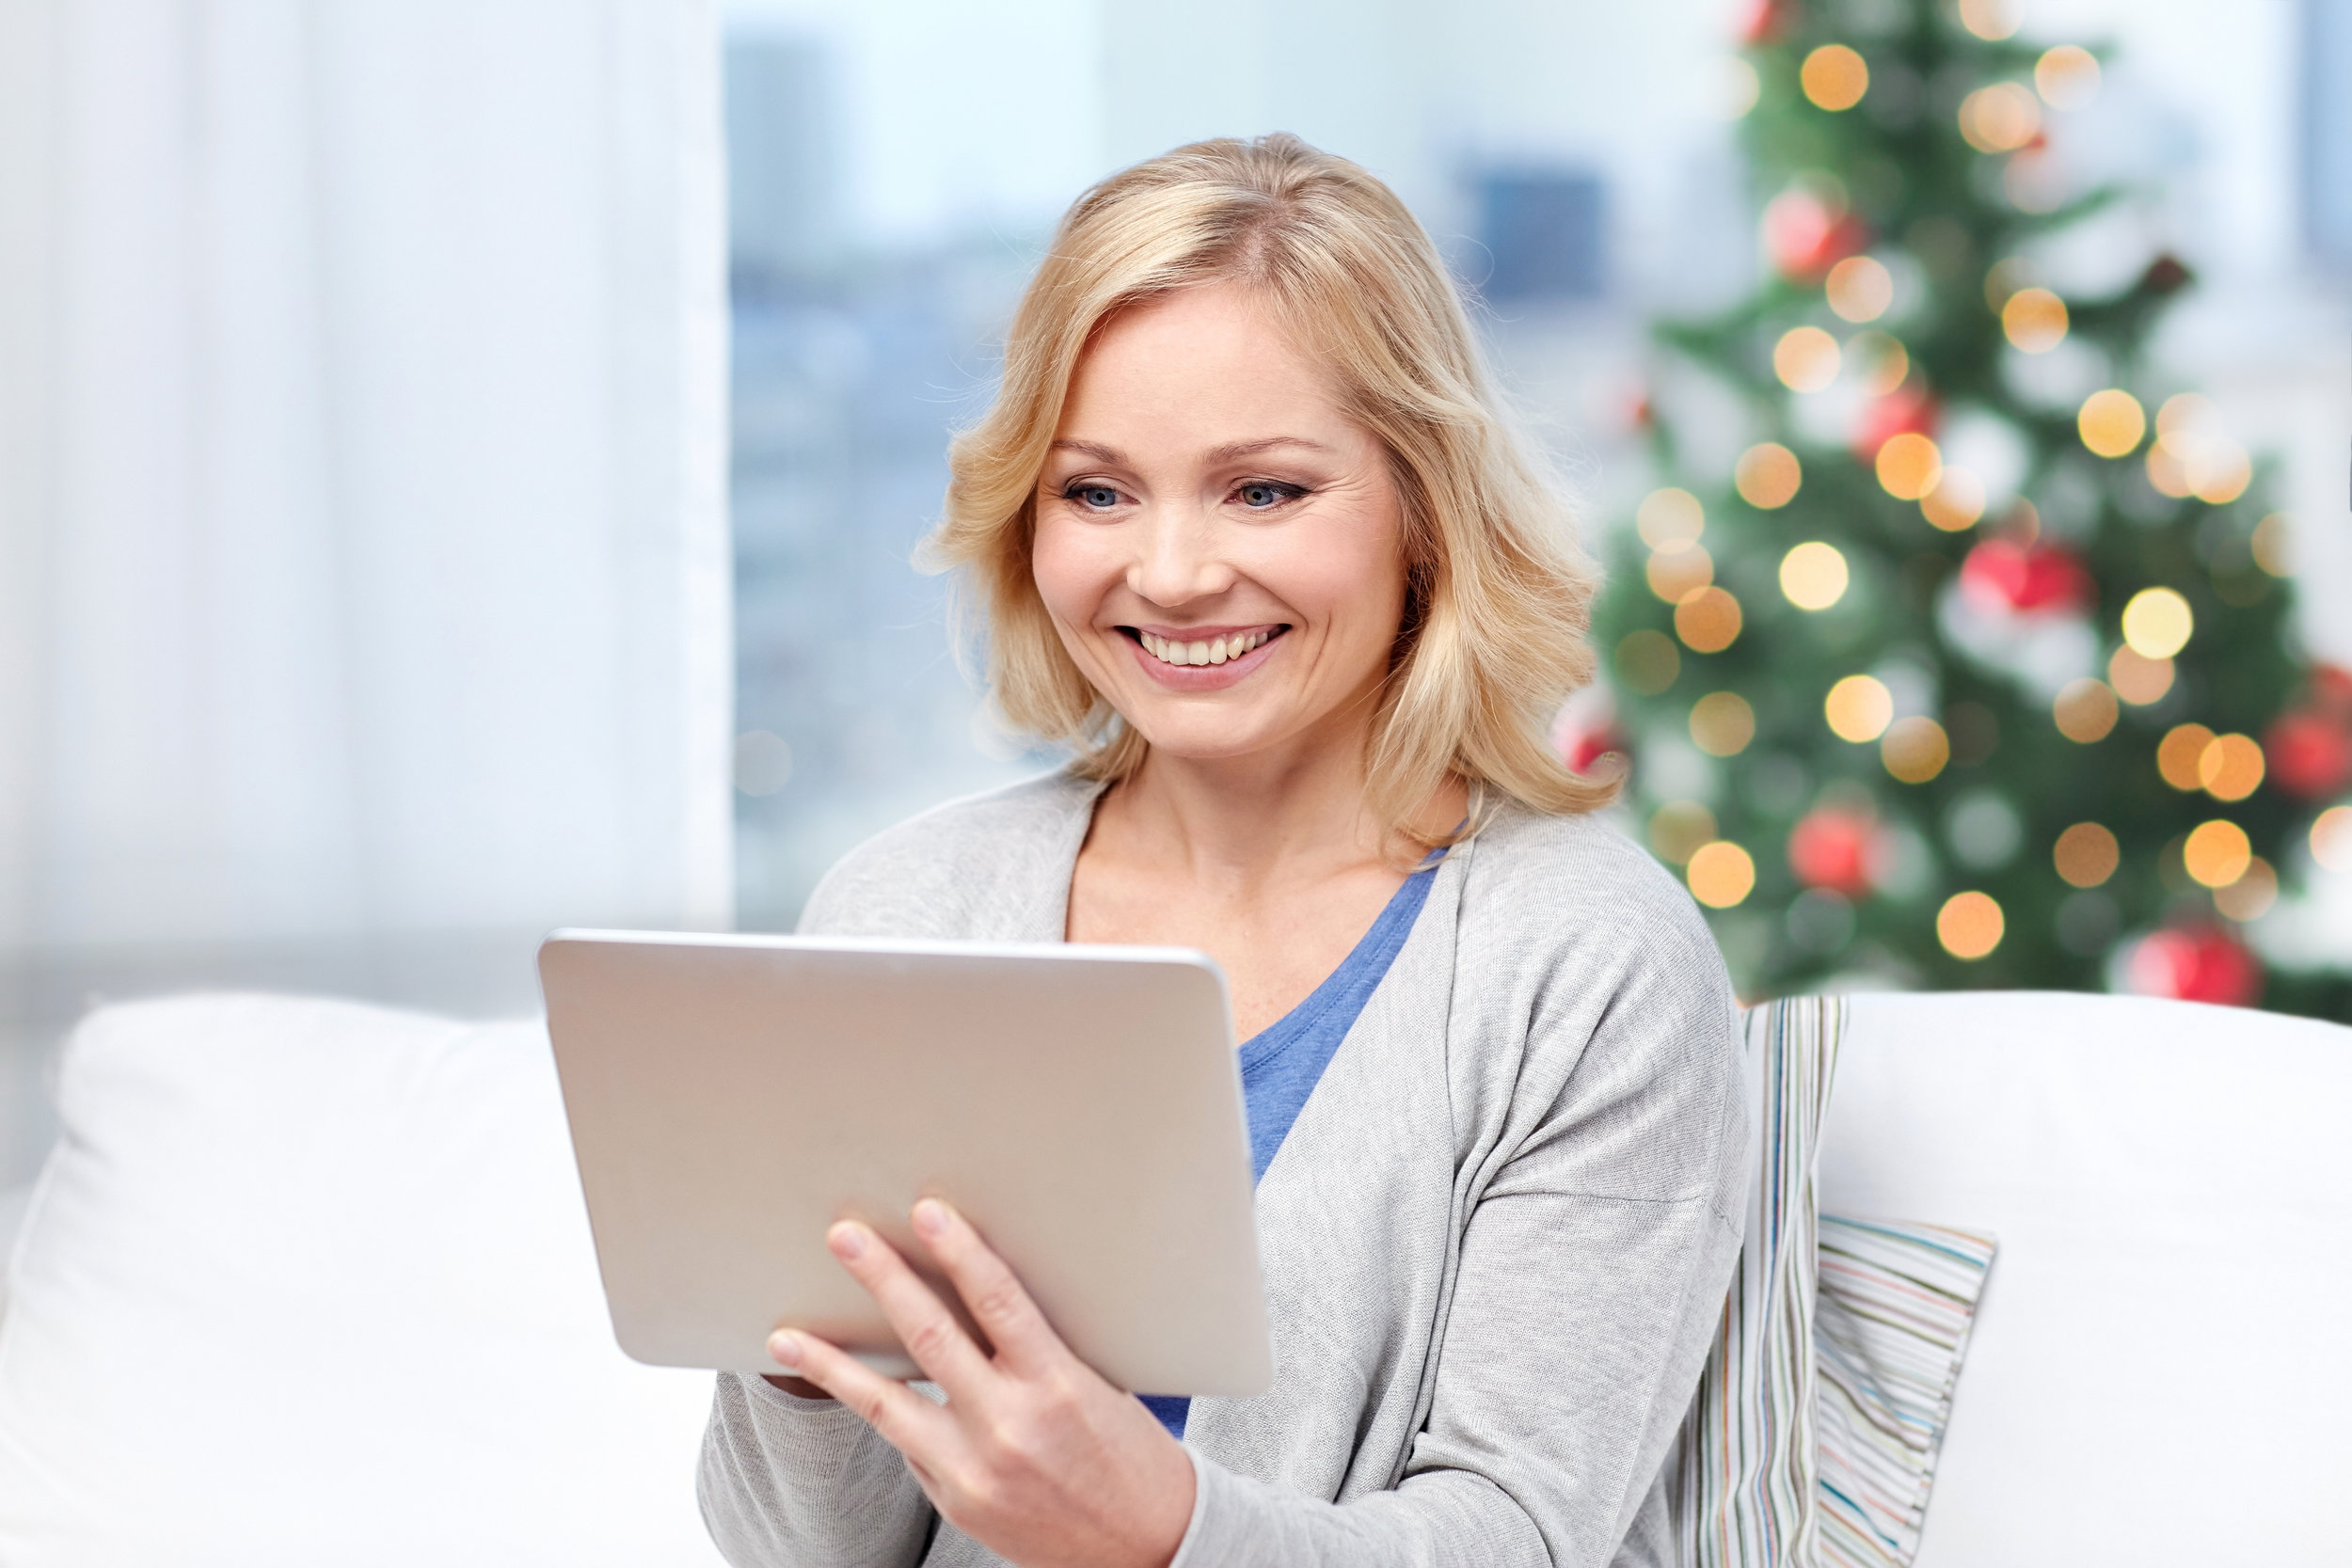 Christmas tree lights can affect your Wi-Fi